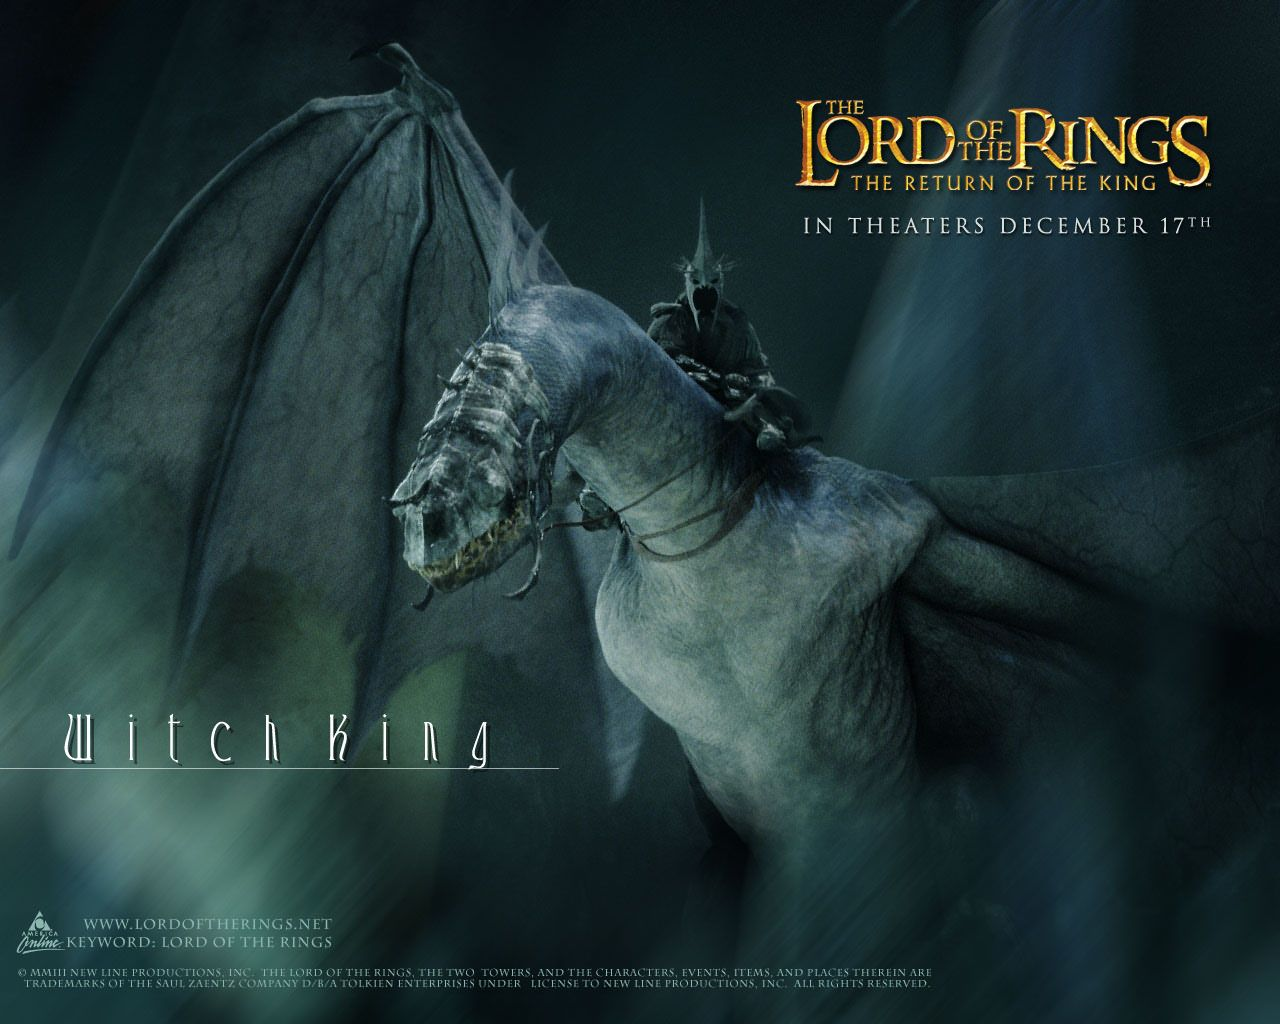 Wallpaper The Lord of the Rings film Movies